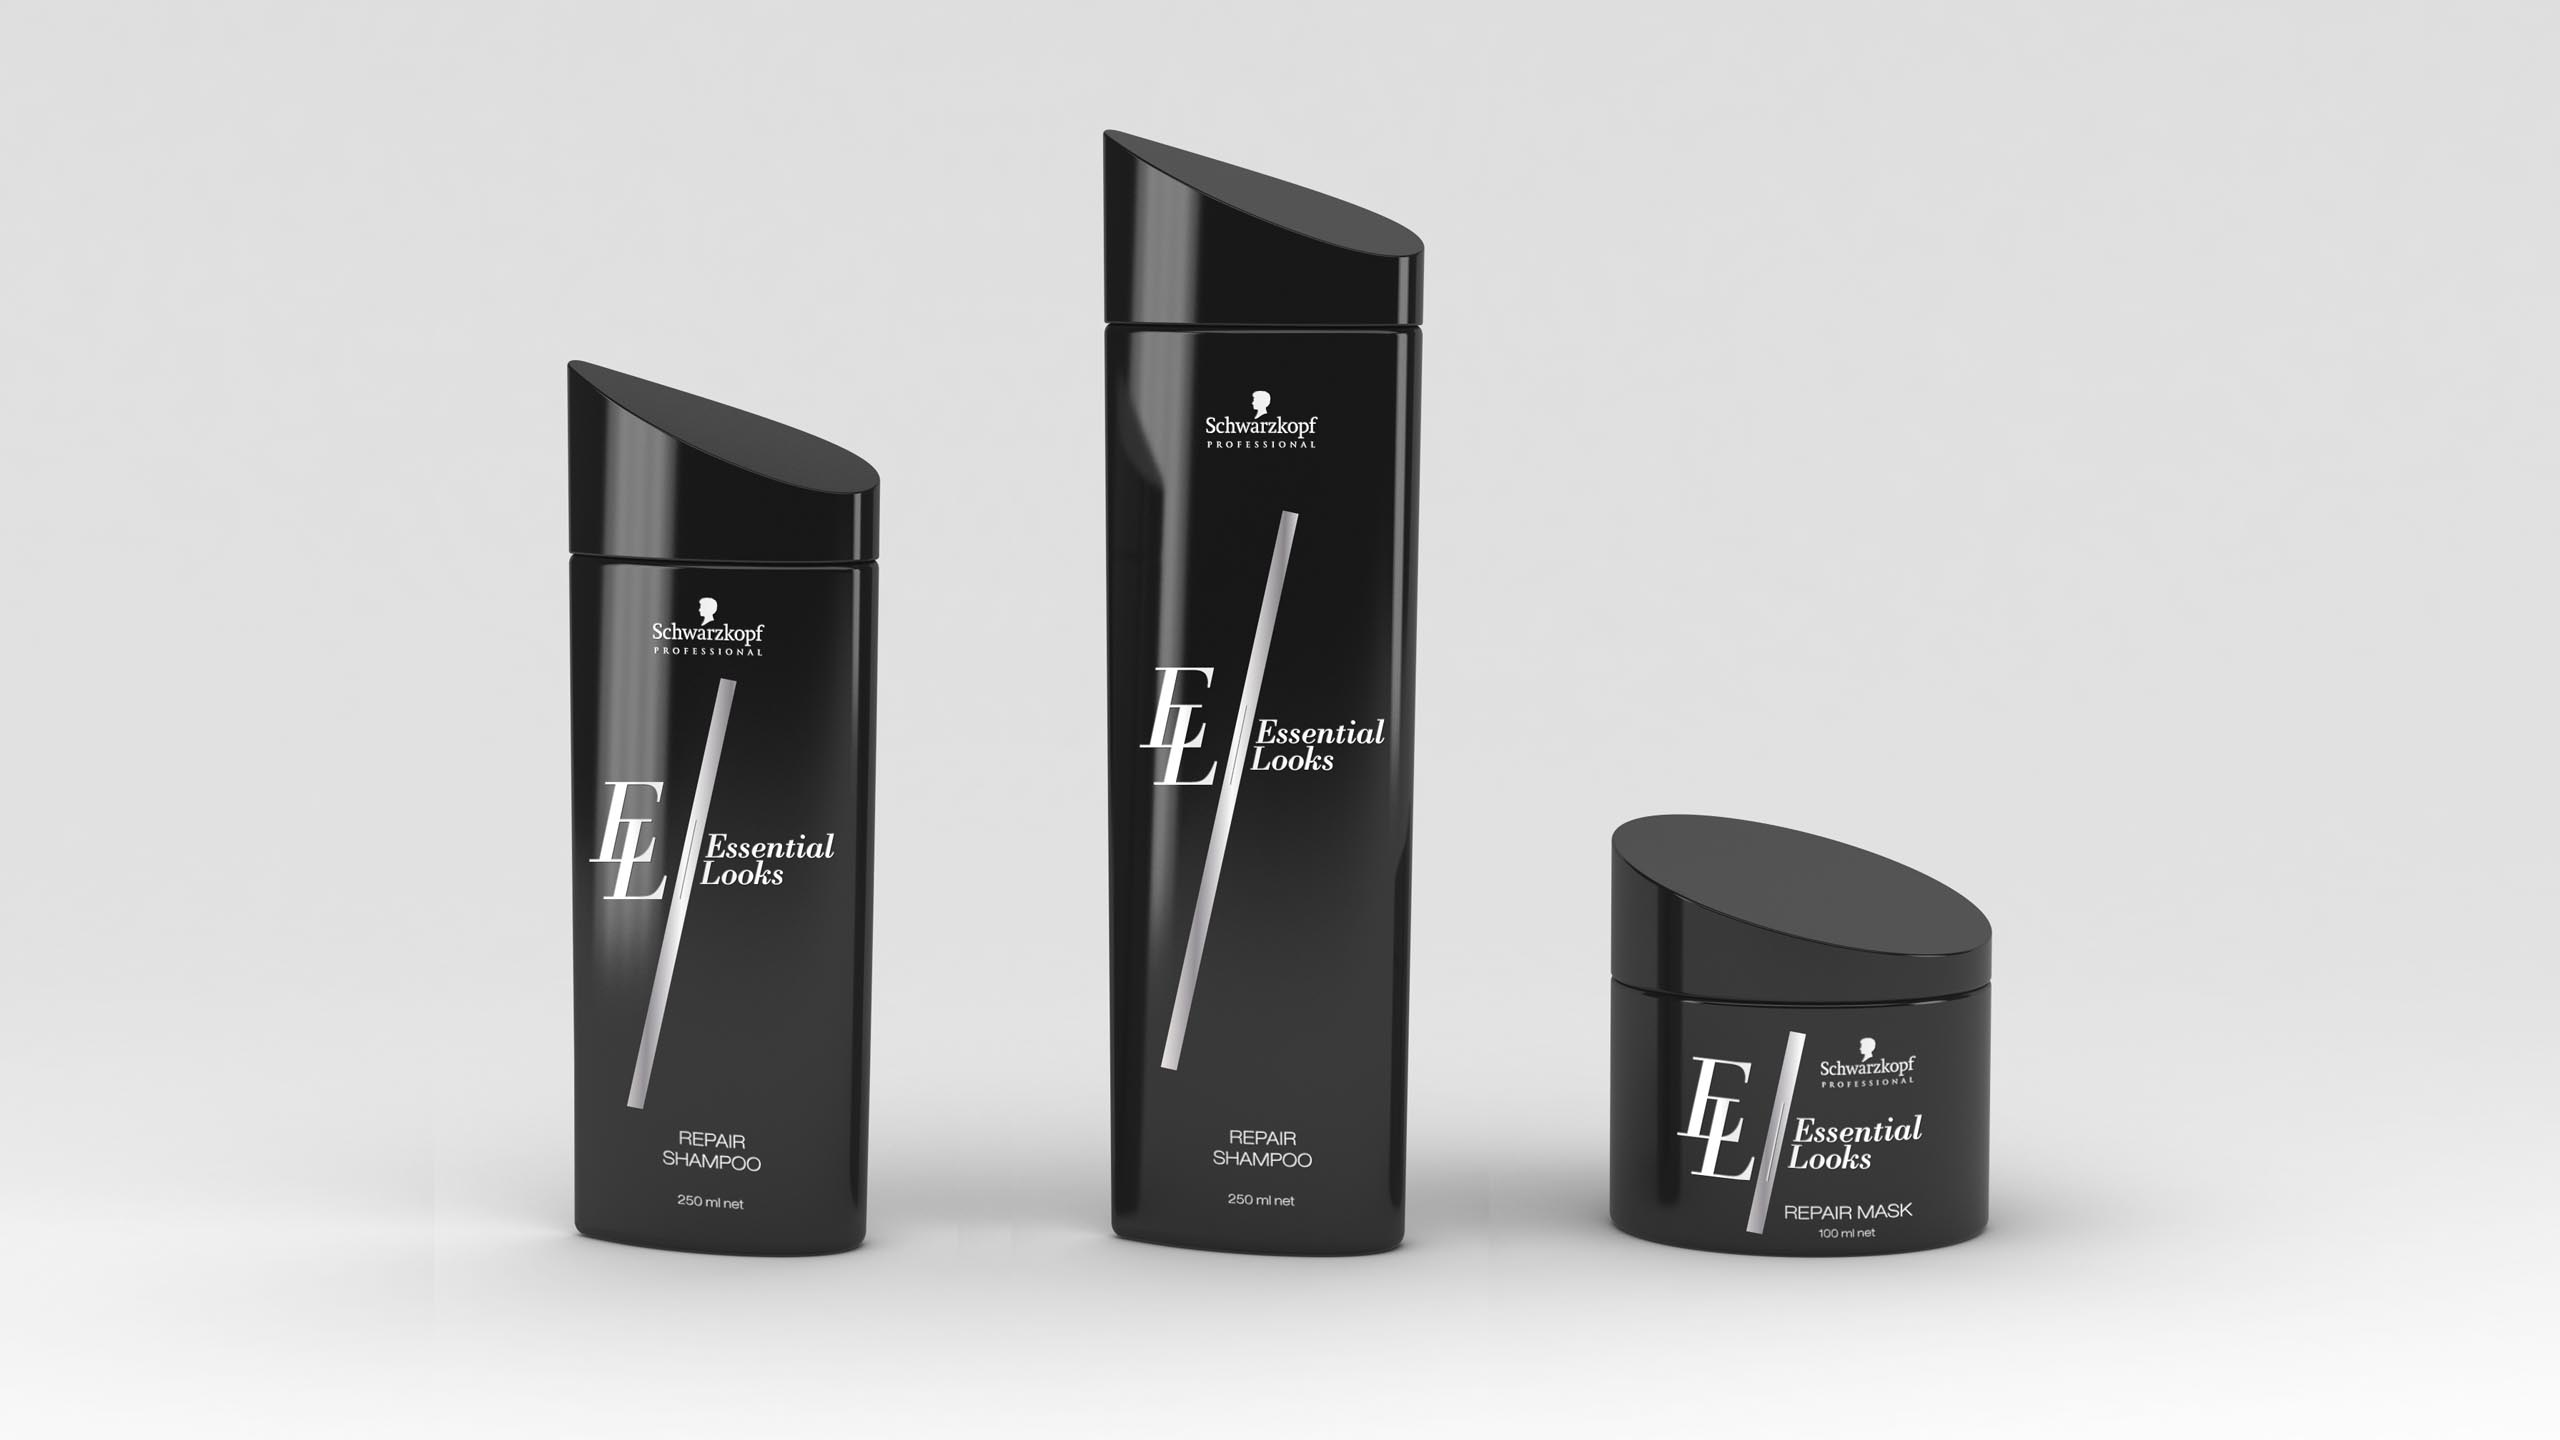 packaging design study for Schwarzopf Professional